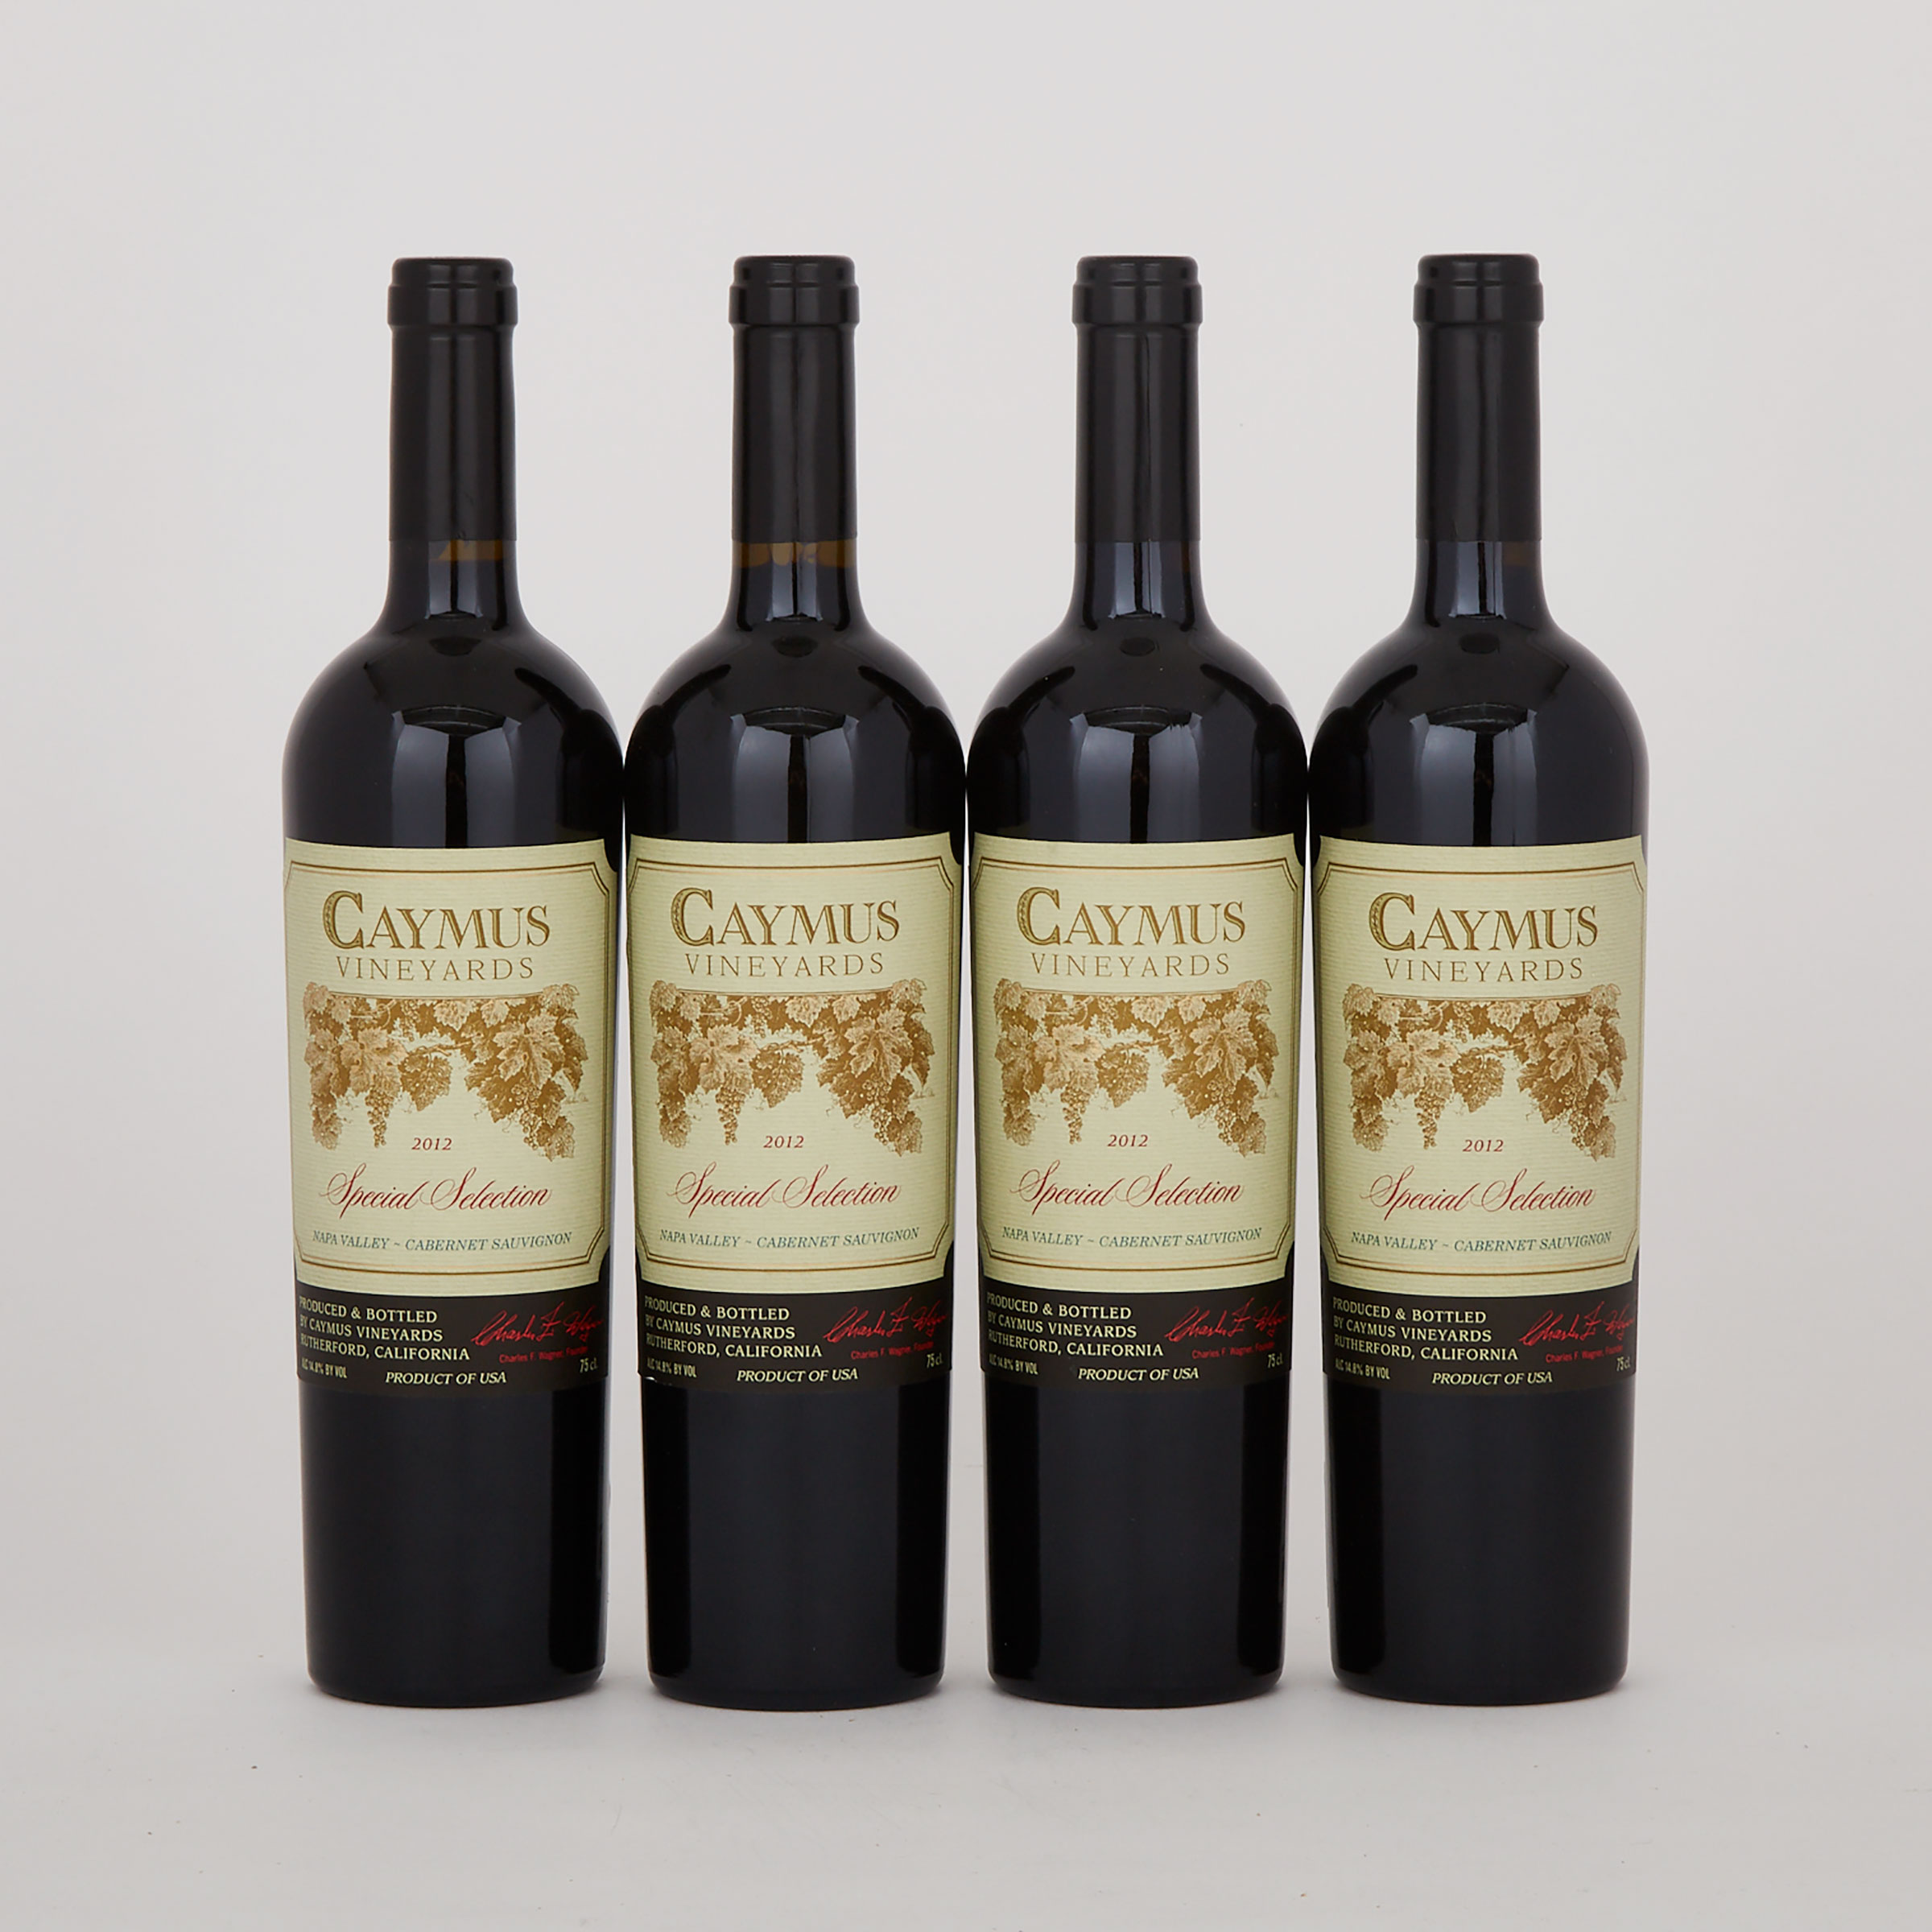 CAYMUS VINEYARDS CABERNET SAUVIGNON SPECIAL SELECTION 2012 (4) WA 96